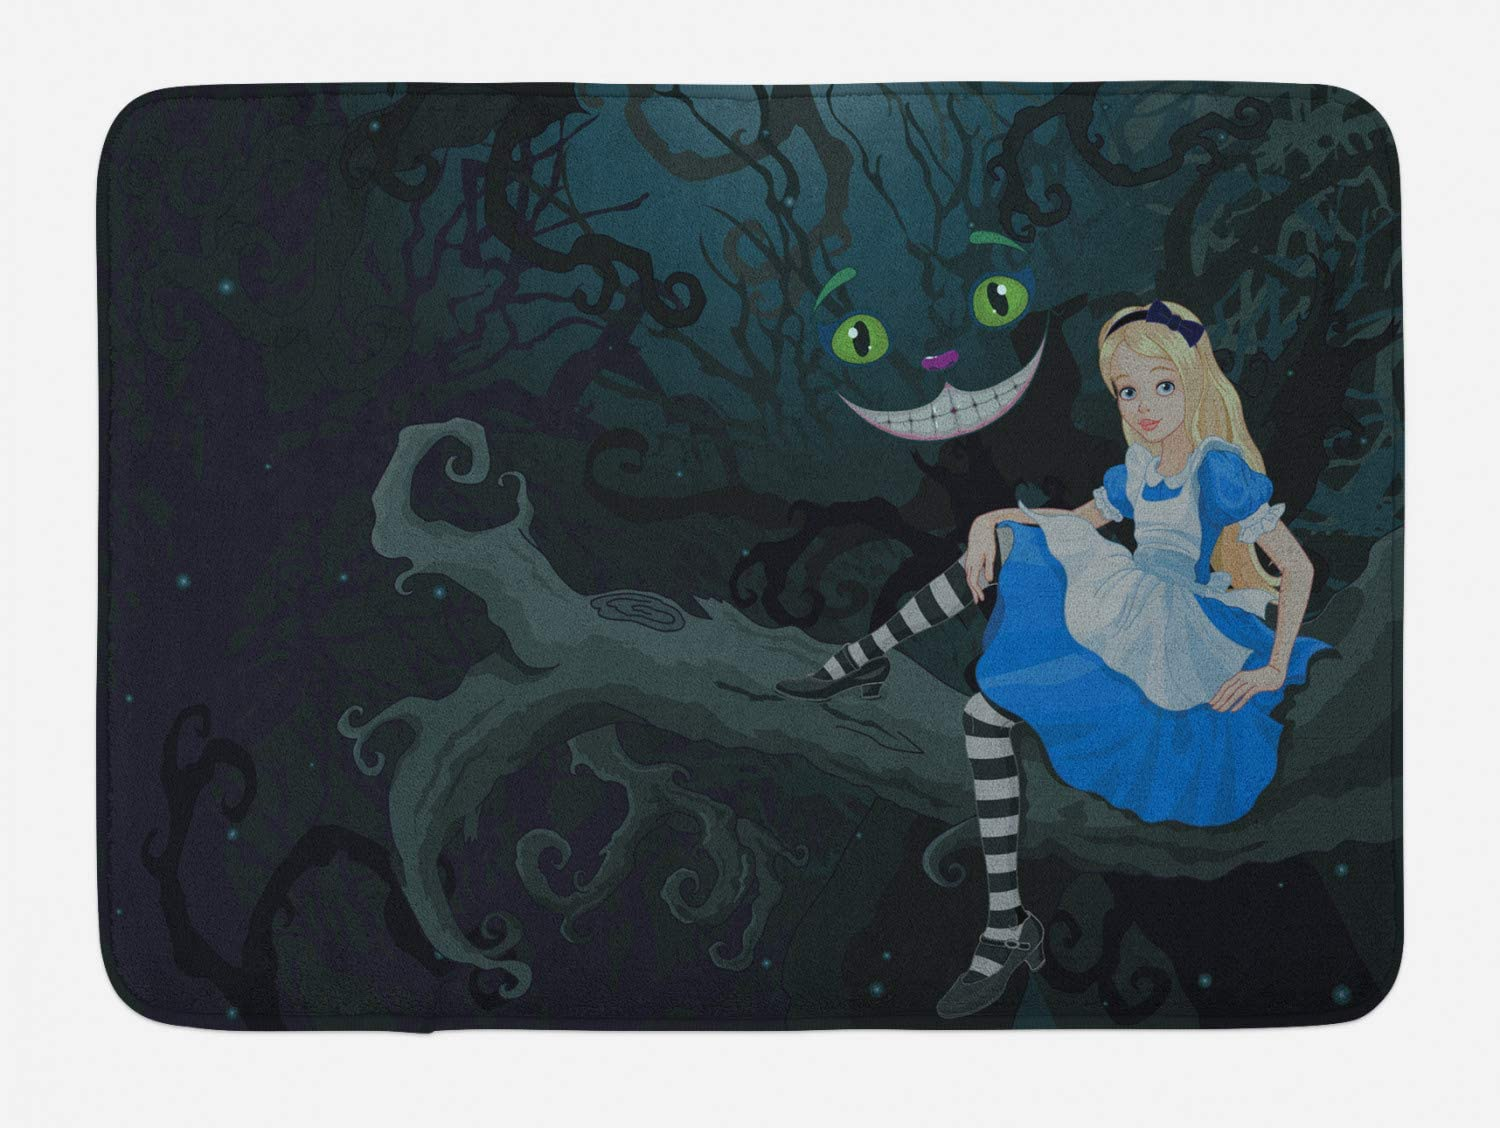 Ambesonne Alice in Wonderland Bath Mat, Alice Sitting on Branch and Chescire Cat in Darkness Cartoon Style, Plush Bathroom Decor Mat with Non Slip Backing, 29.5